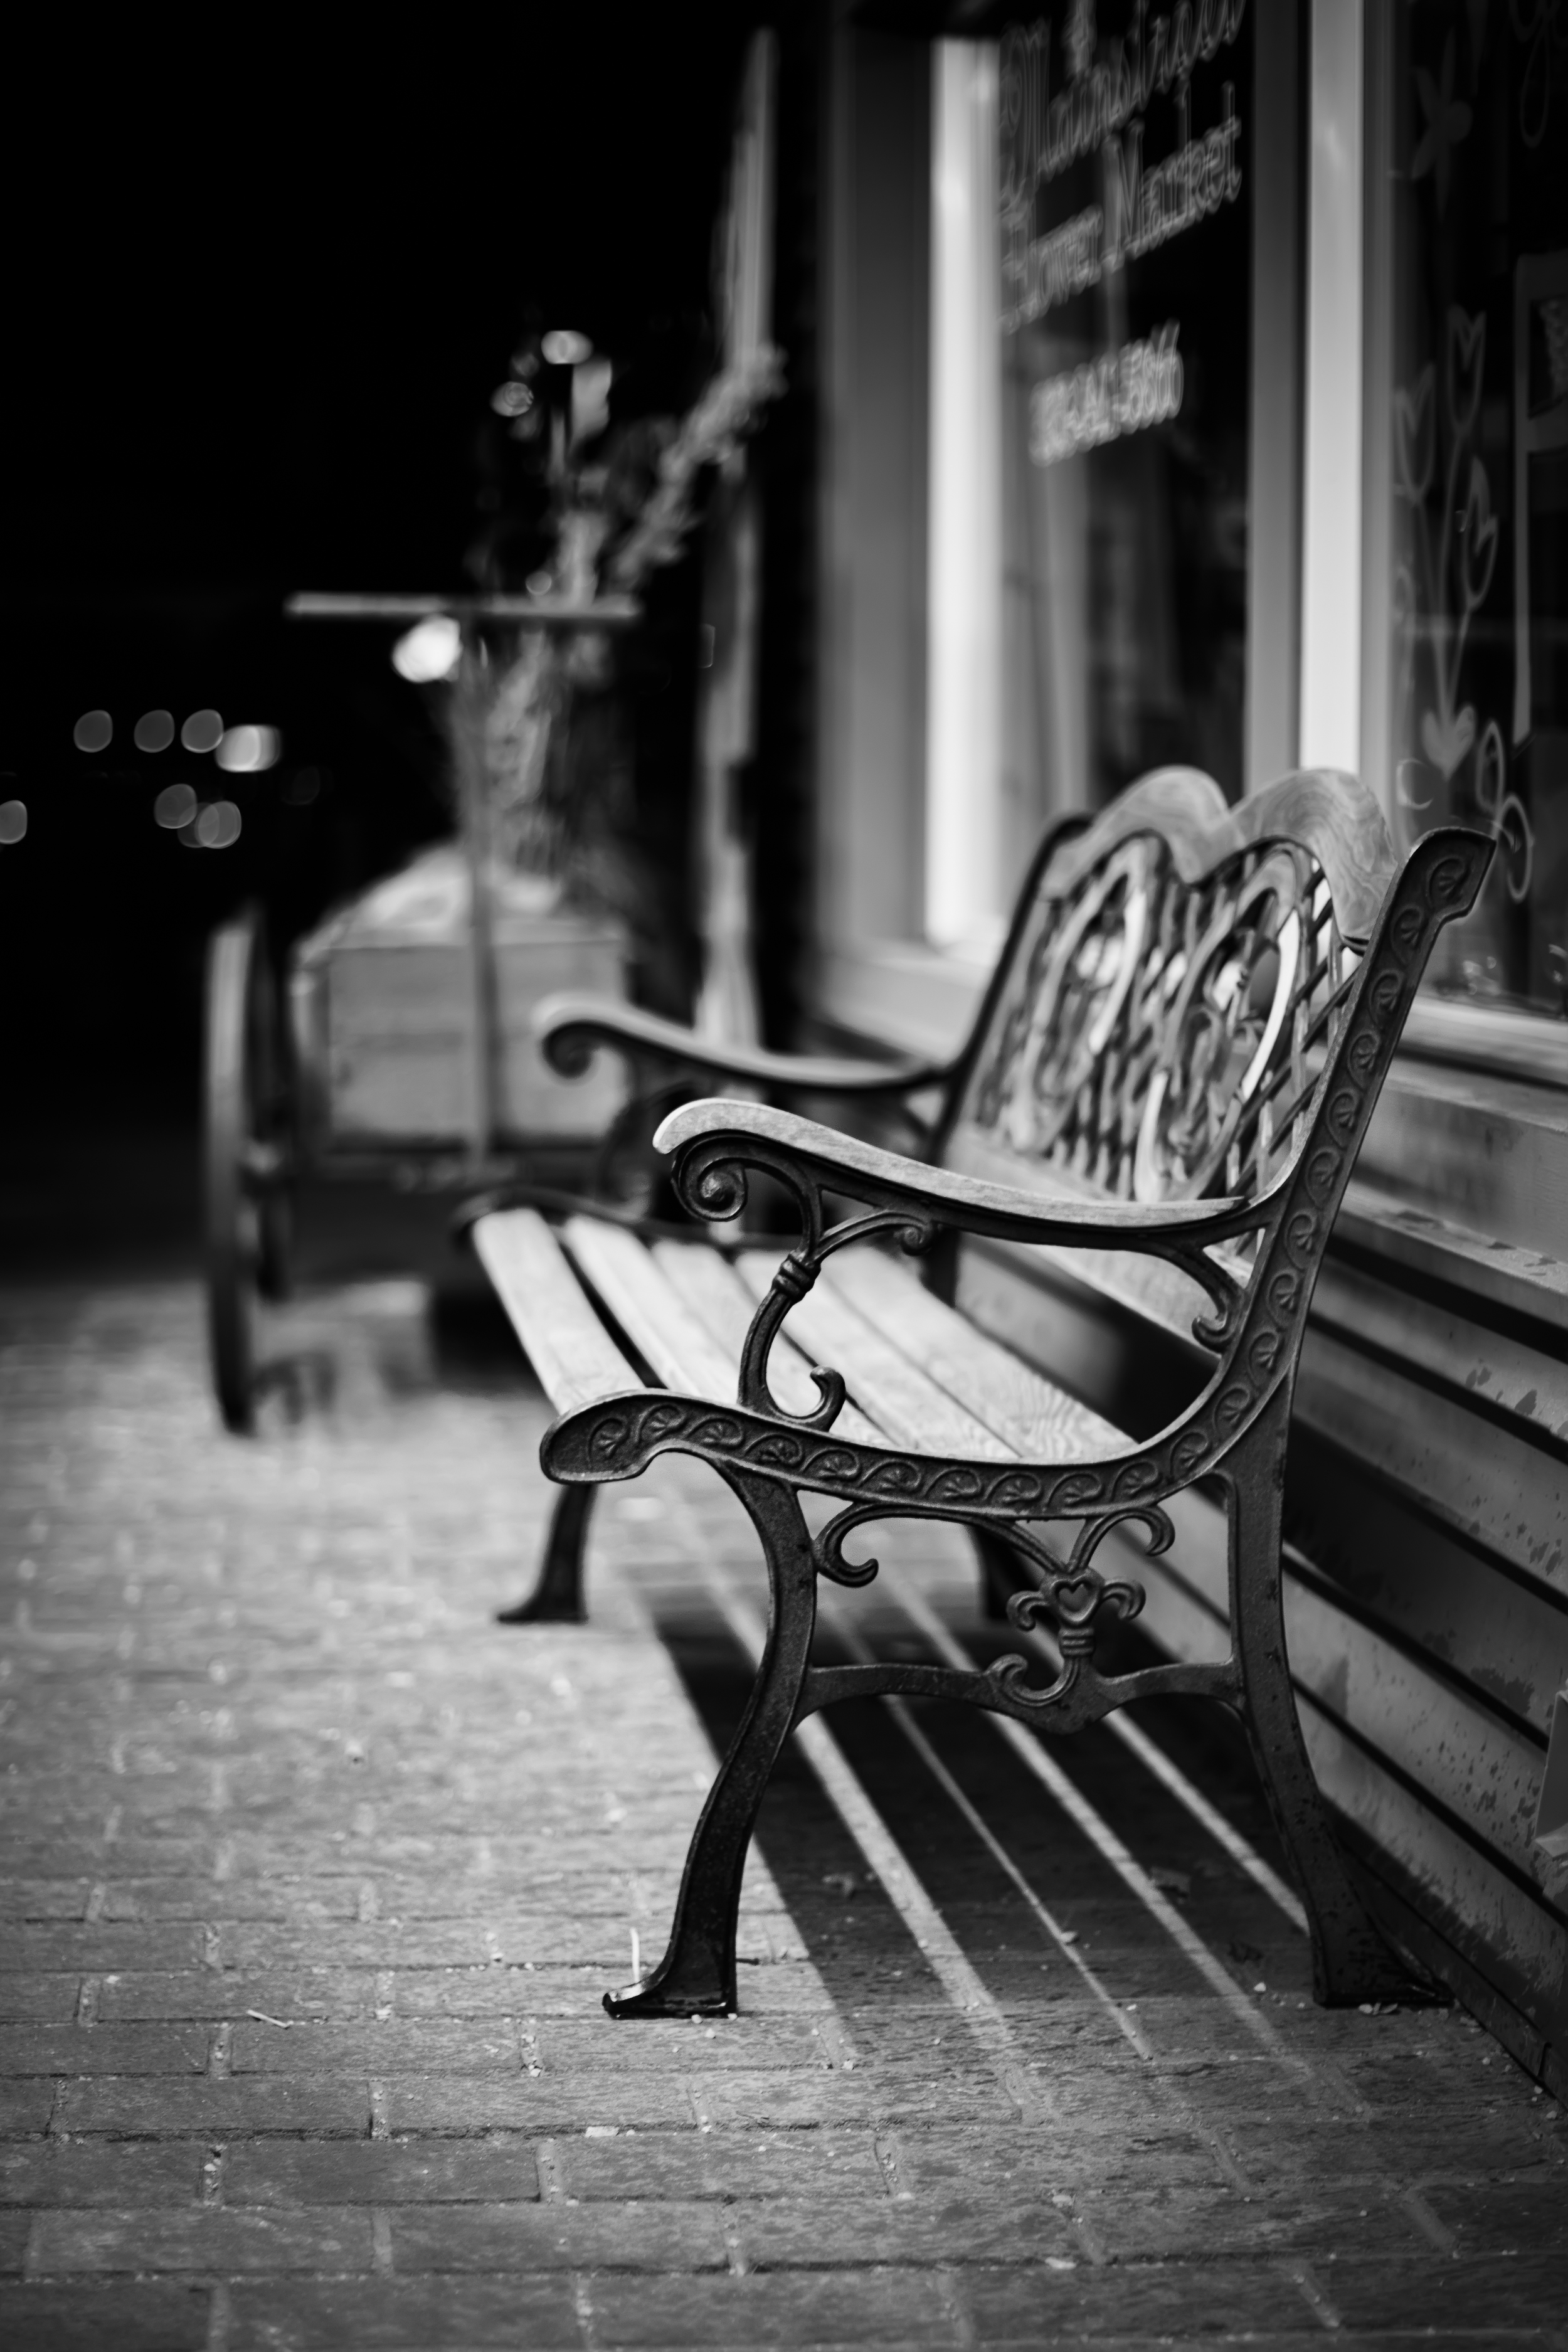 A bench waiting to be used